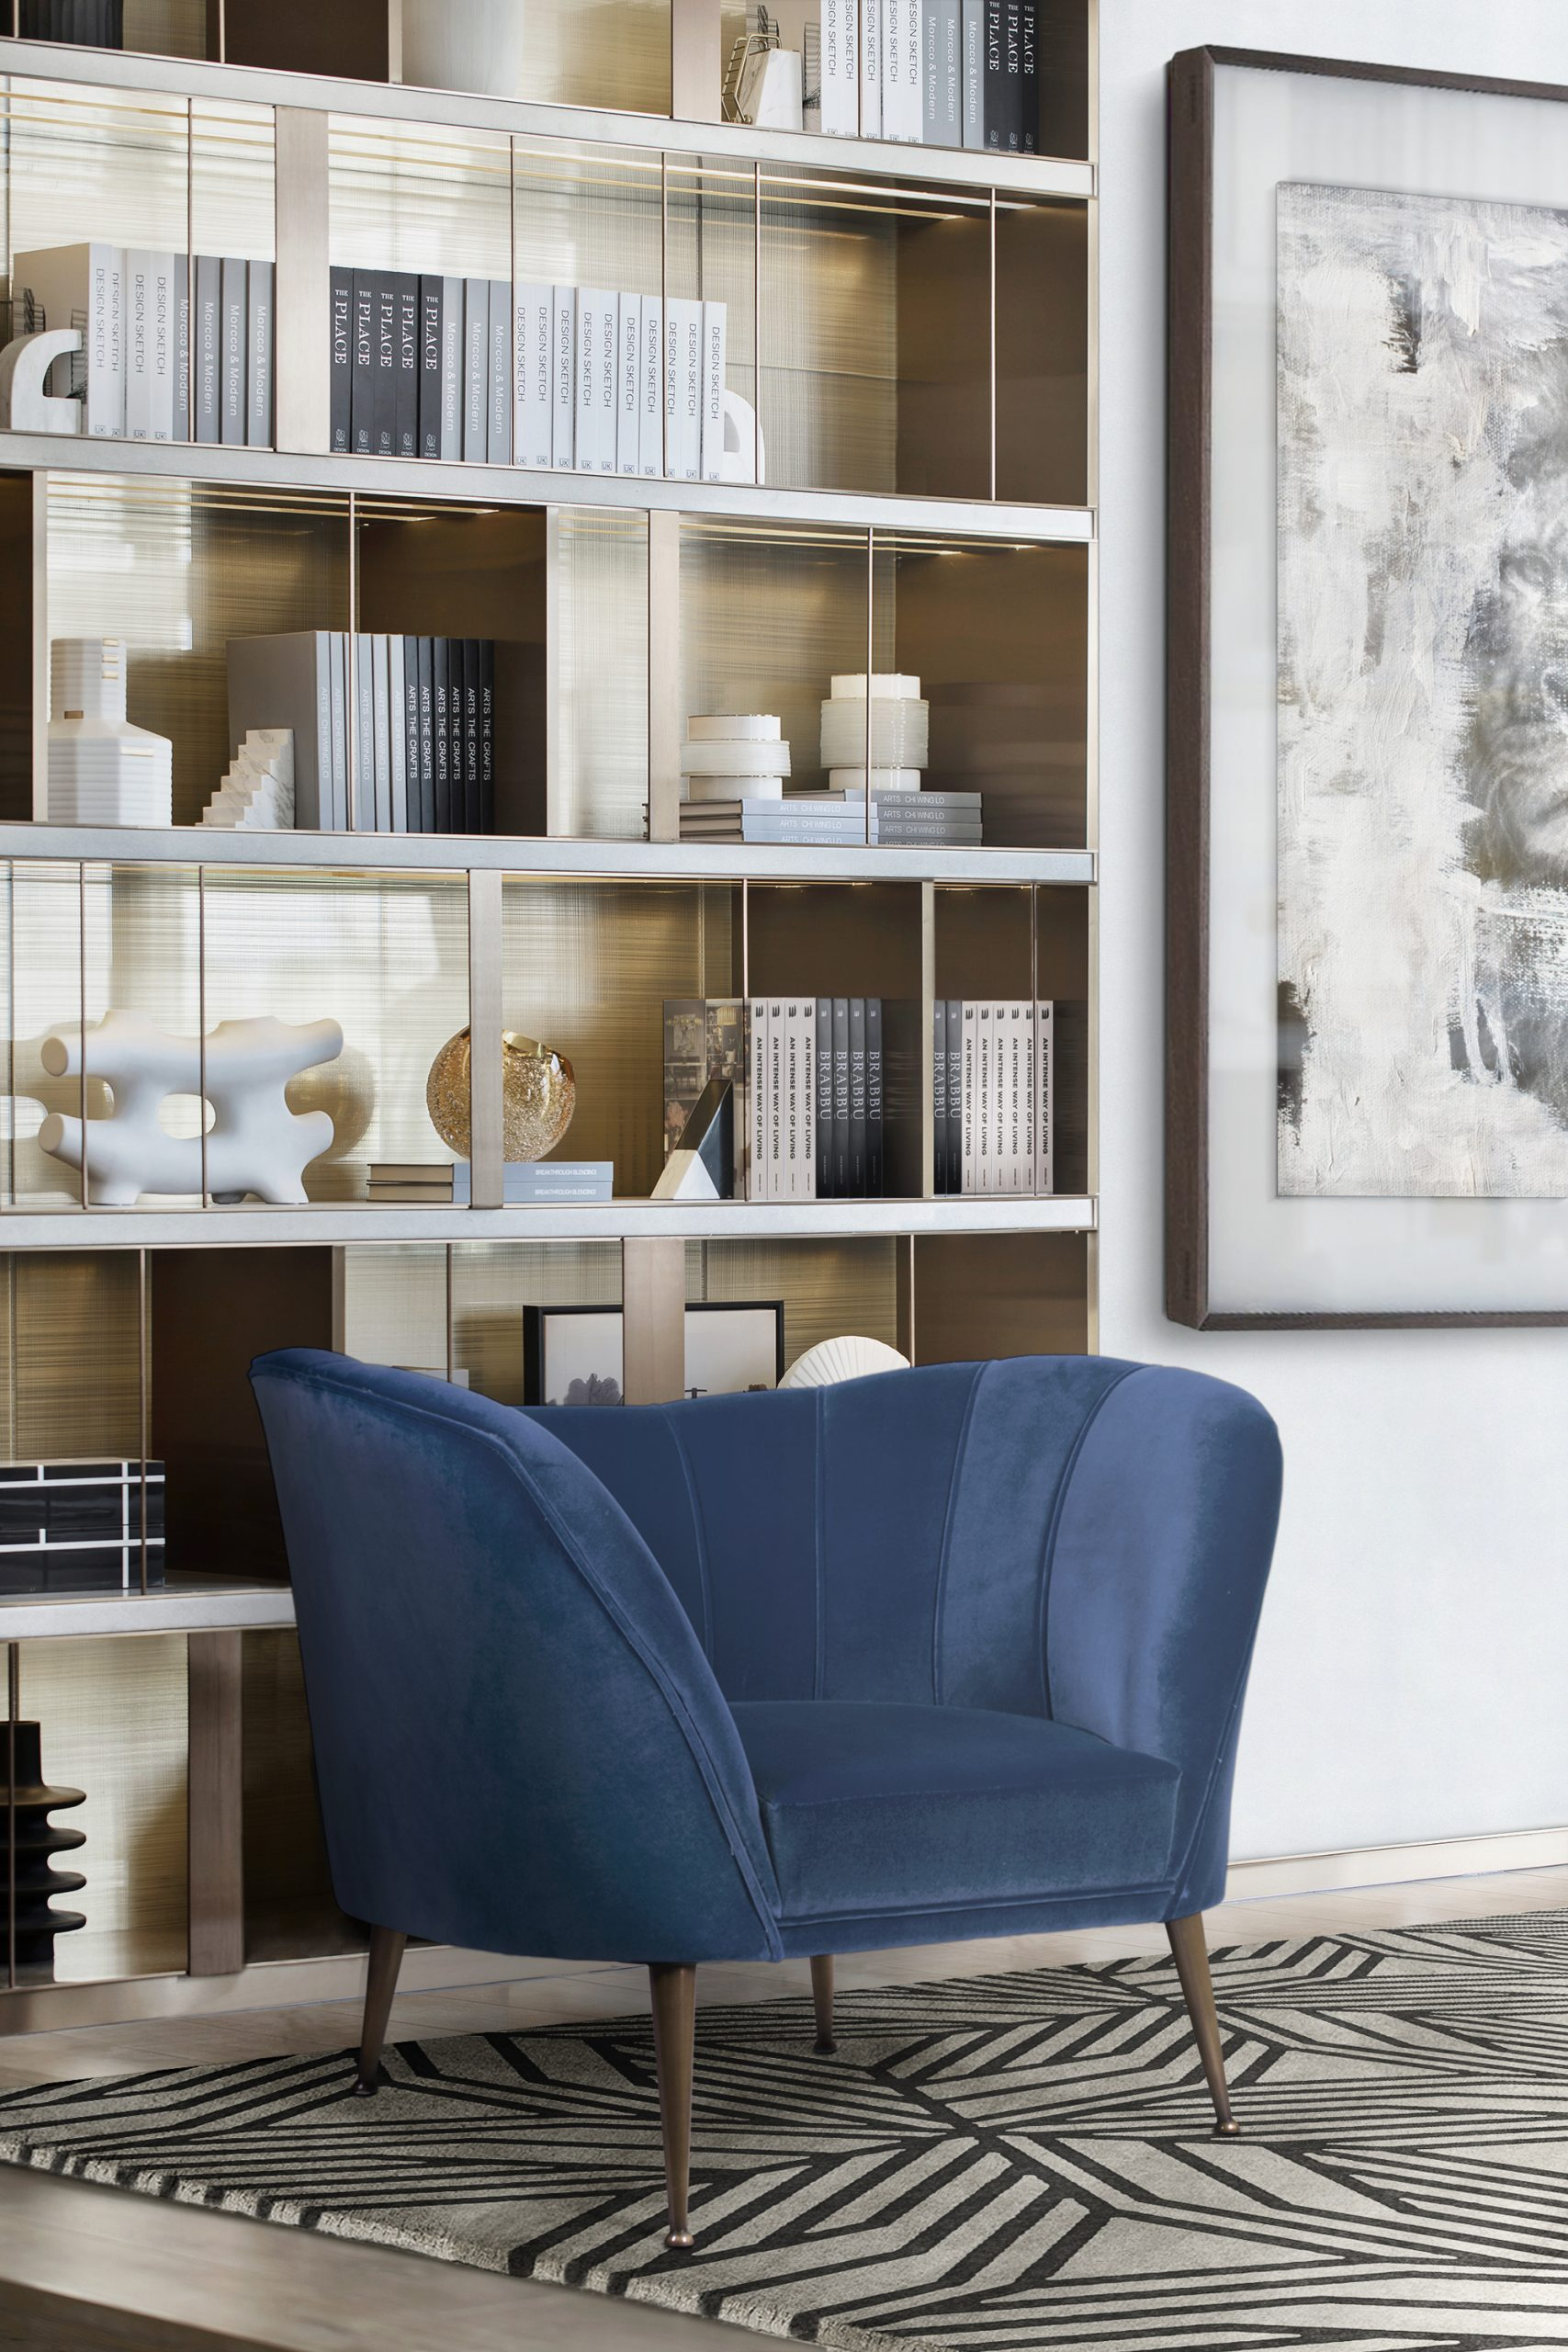 The Best Chairs For Your Reading Corner reading corner The Best Chairs For Your Reading Corner Andes Armchair cauca Rug scaled